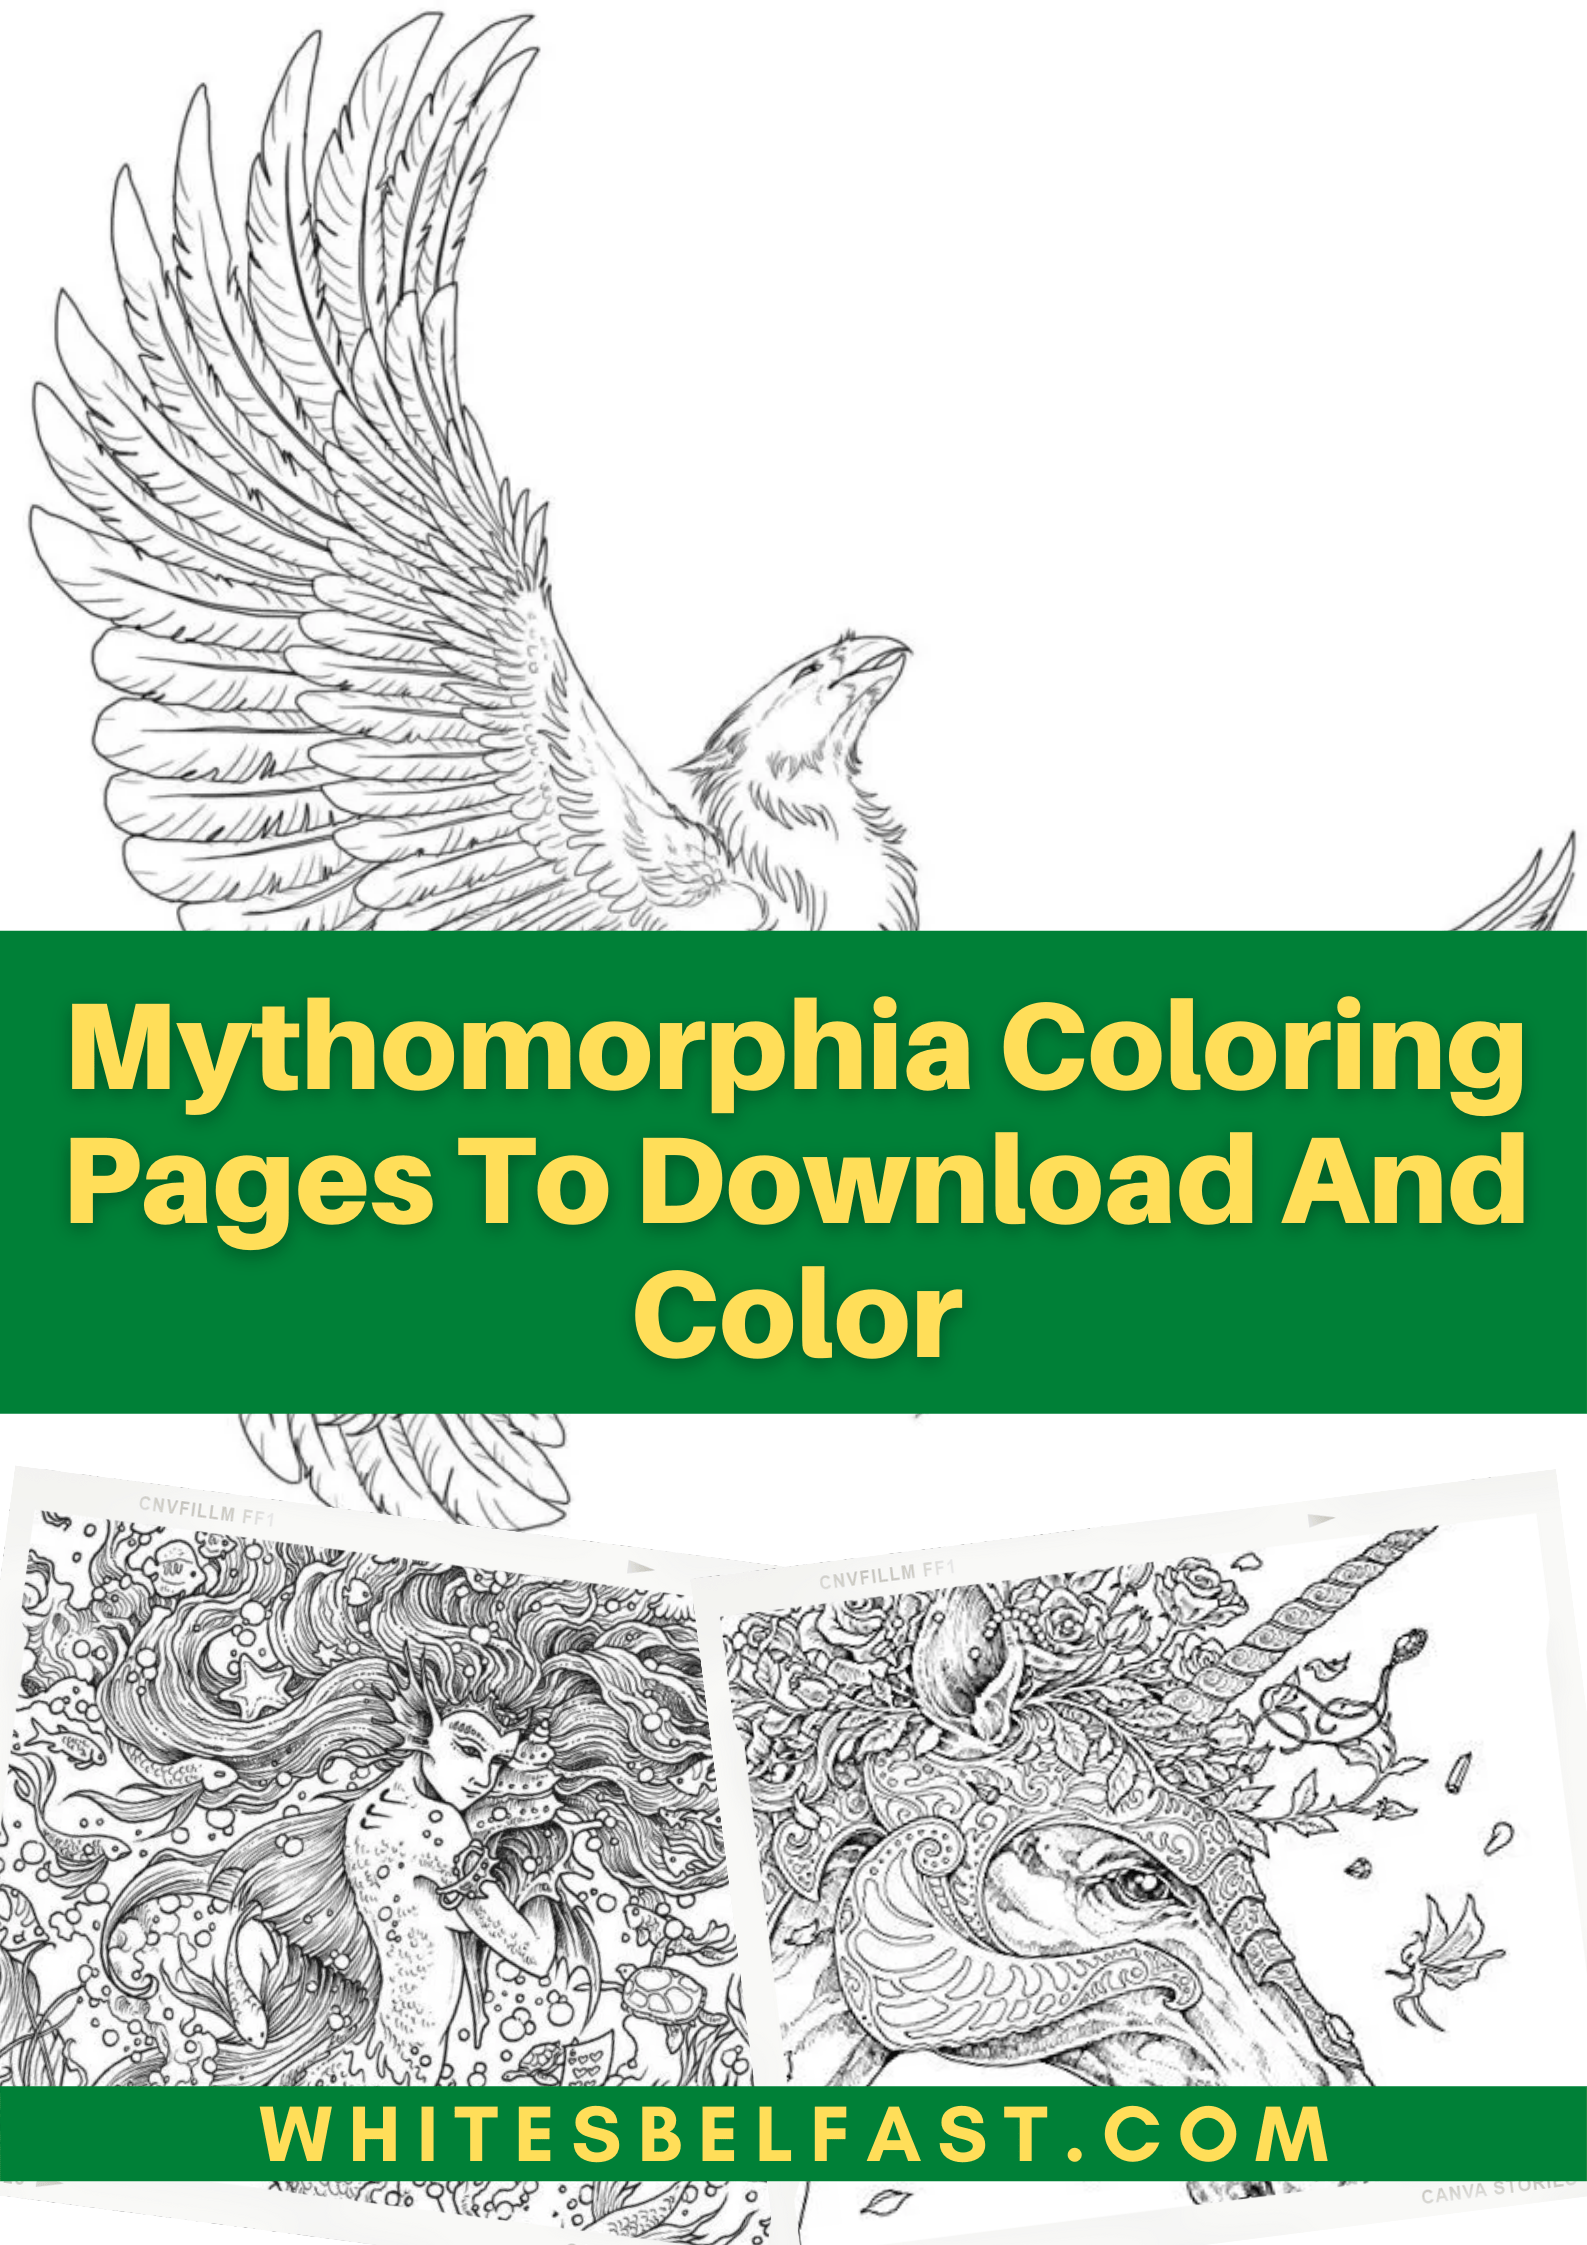 Mythomorphia Coloring Pages To Download And Color - Whitesbelfast.com